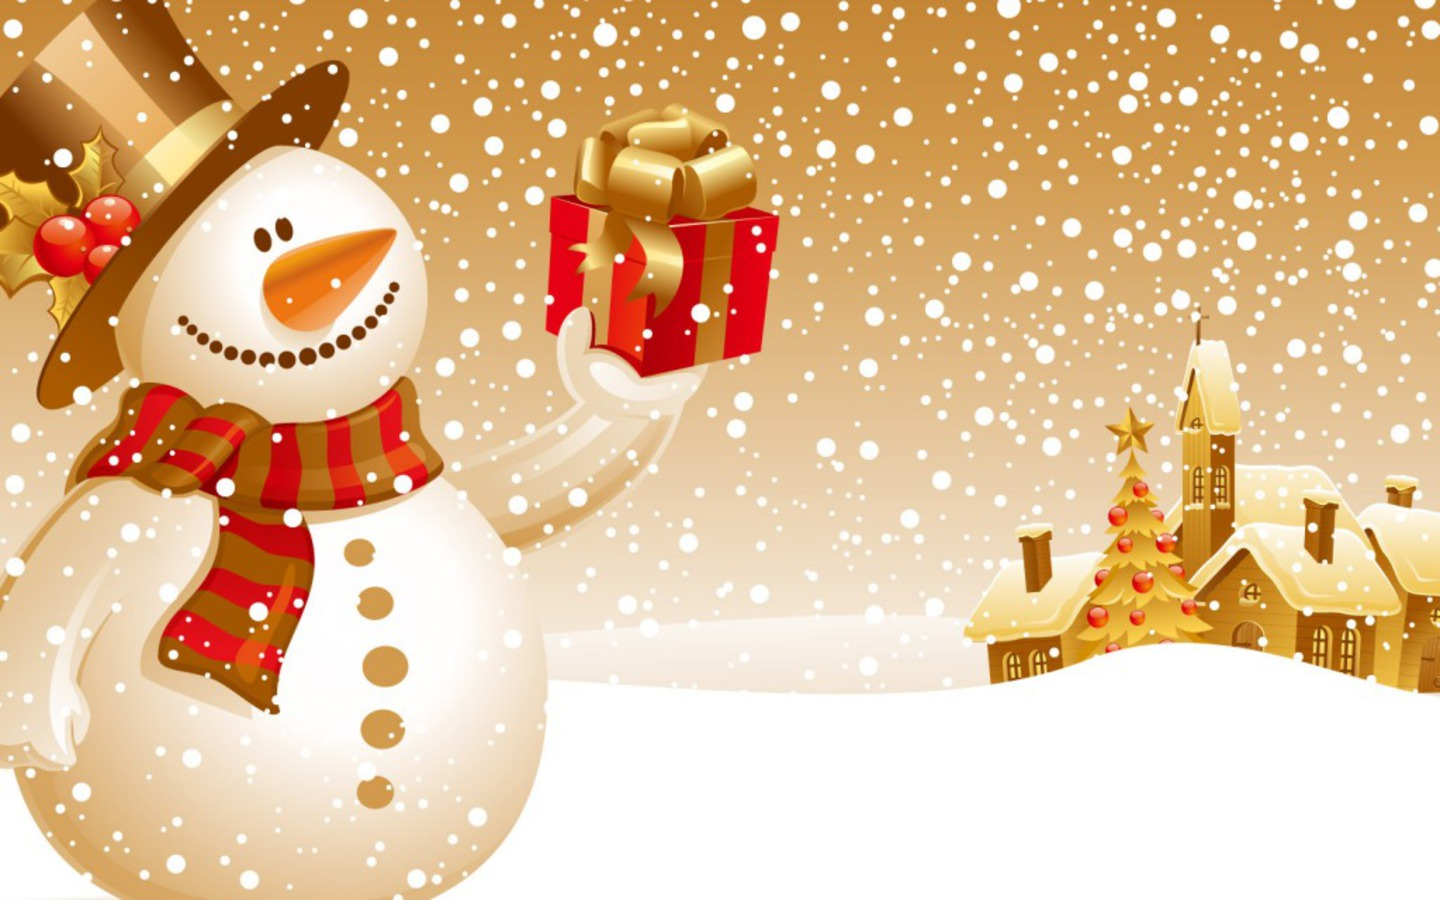 Cute Christmas Backgrounds 9269 Hd Wallpapers in Celebrations 1440x900